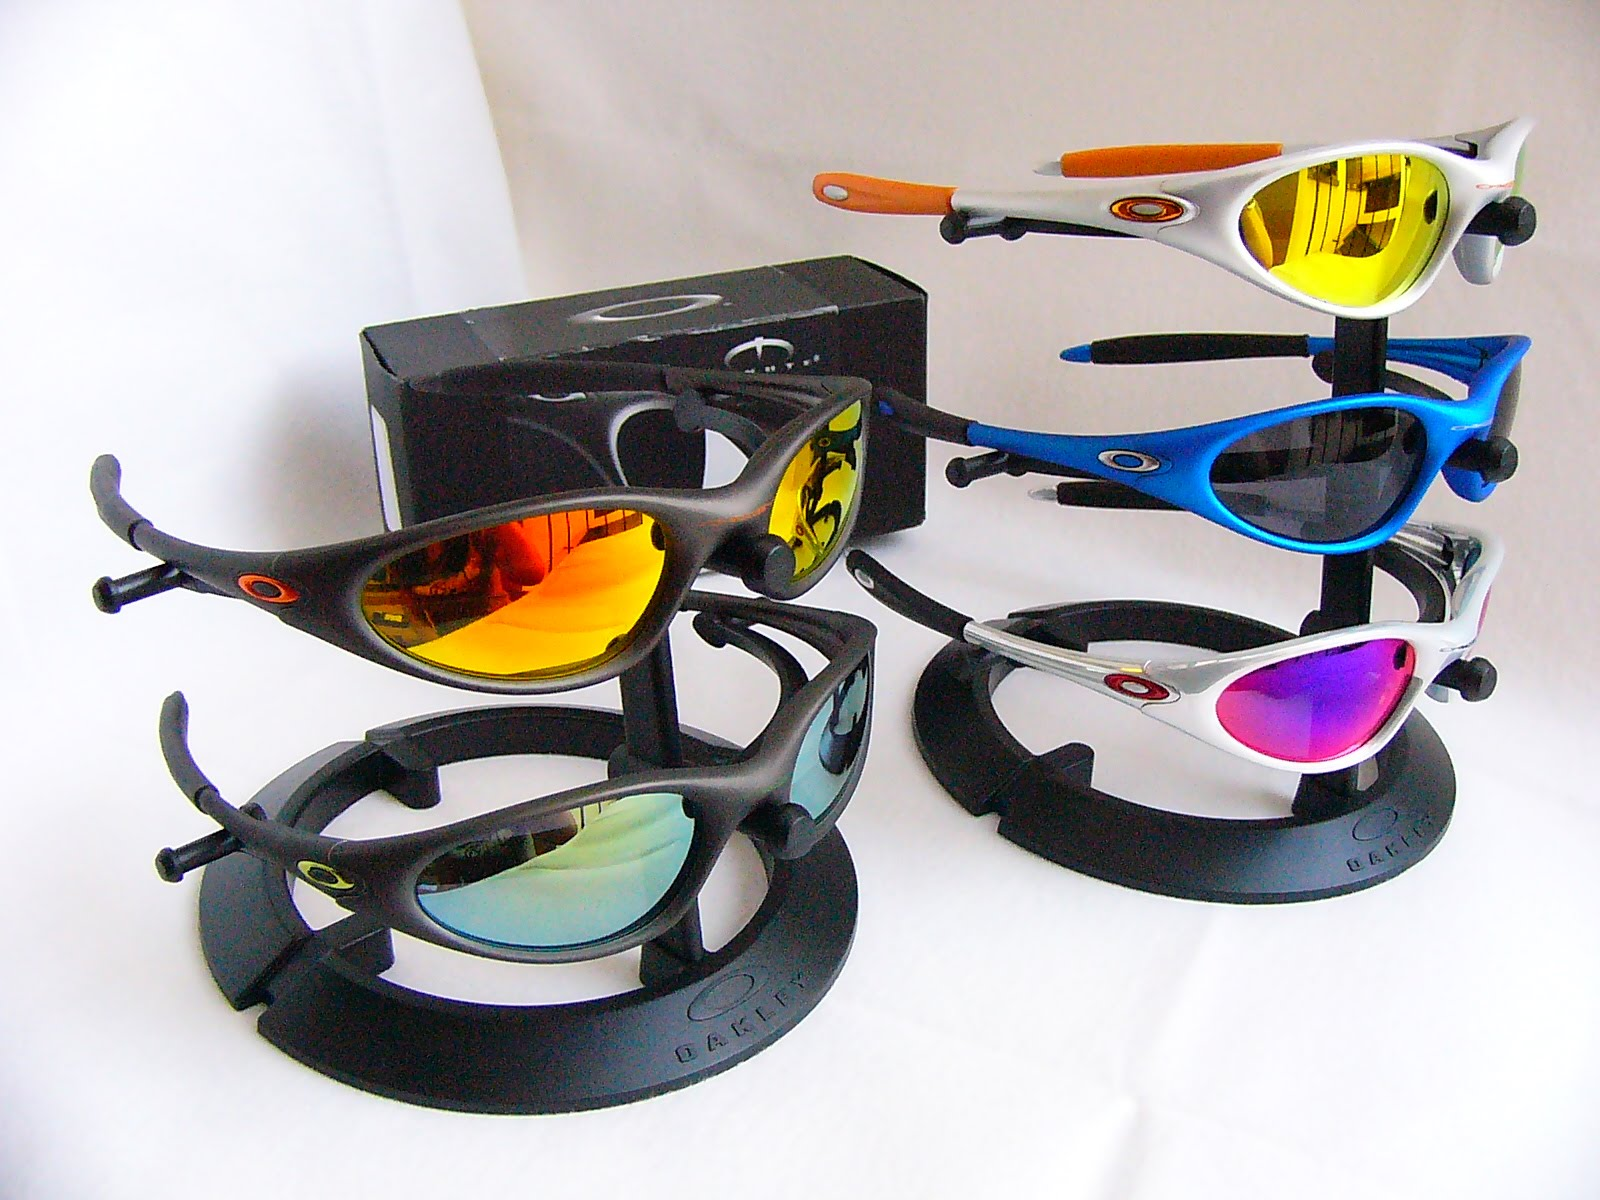 870d6eca544 Minute 1.0 Collections. Posted by oakley collector